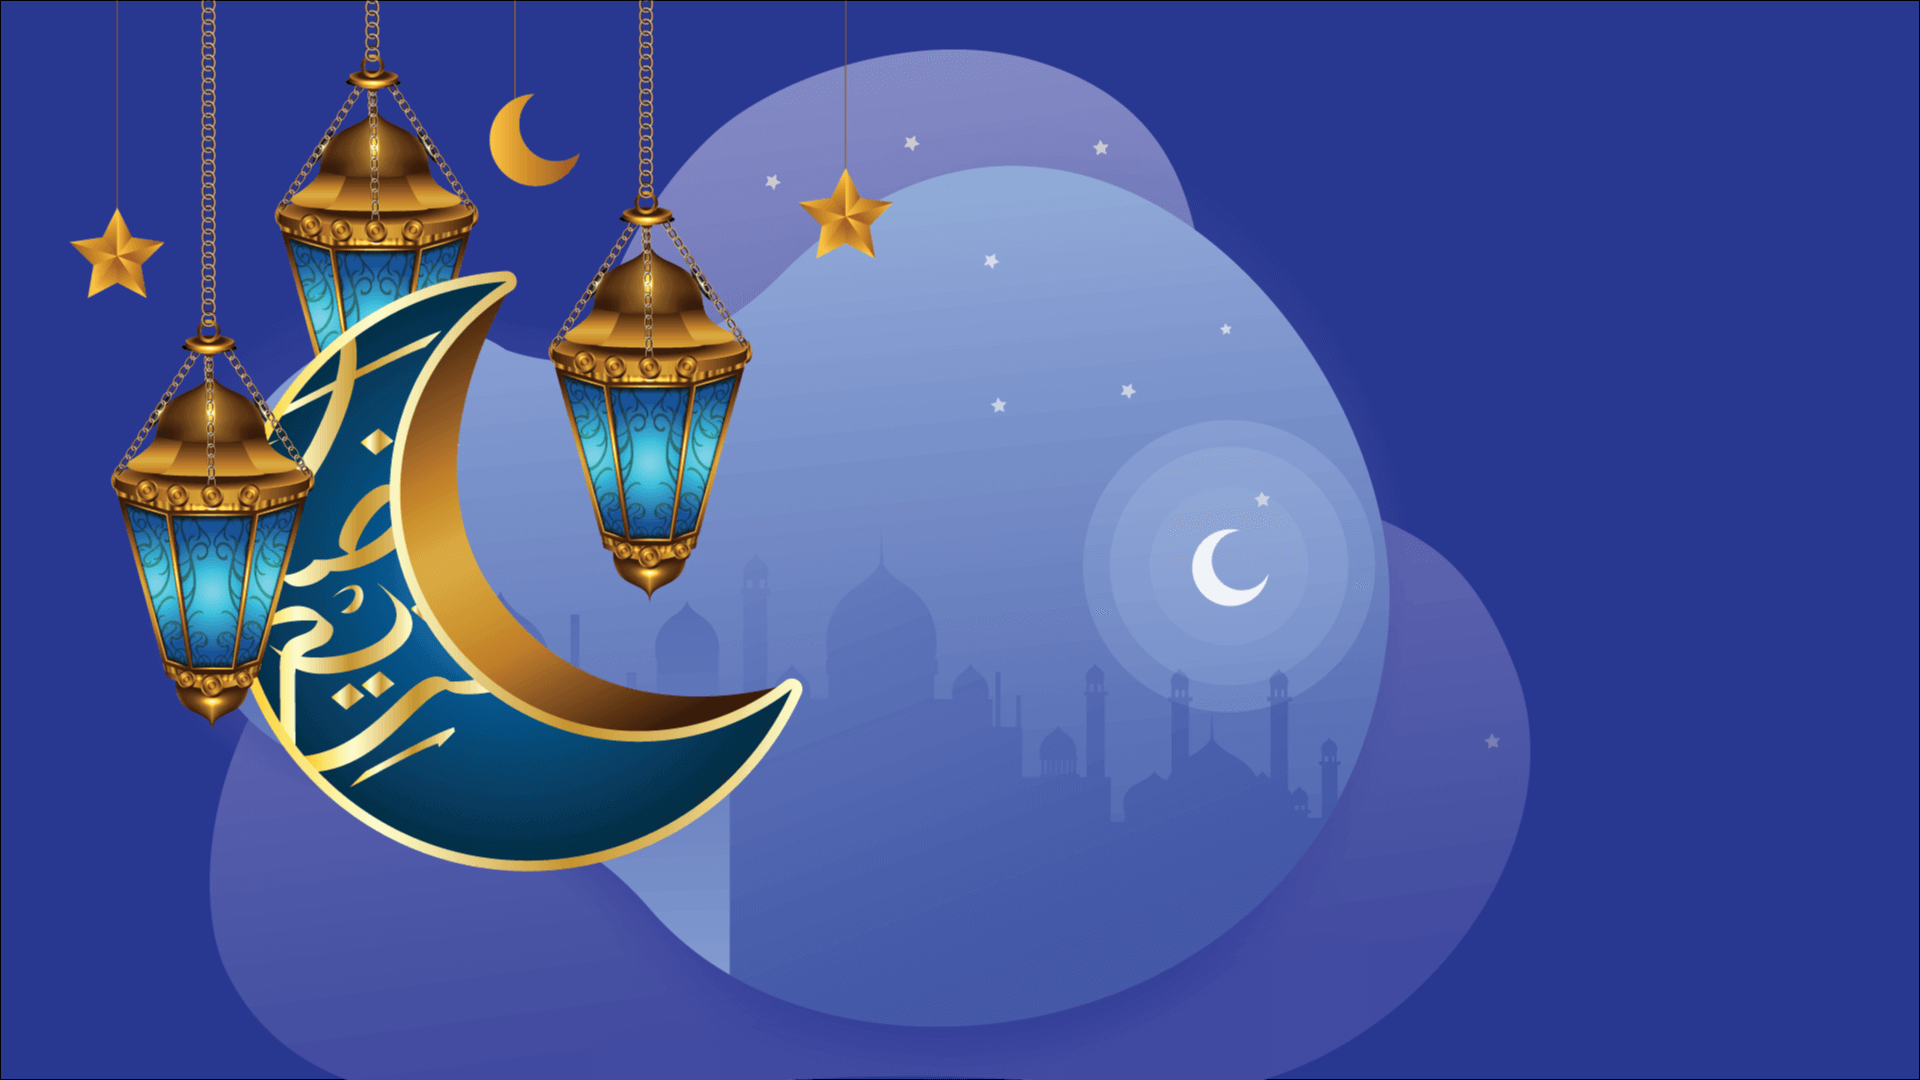 Ramadan ecards and online greeting cards